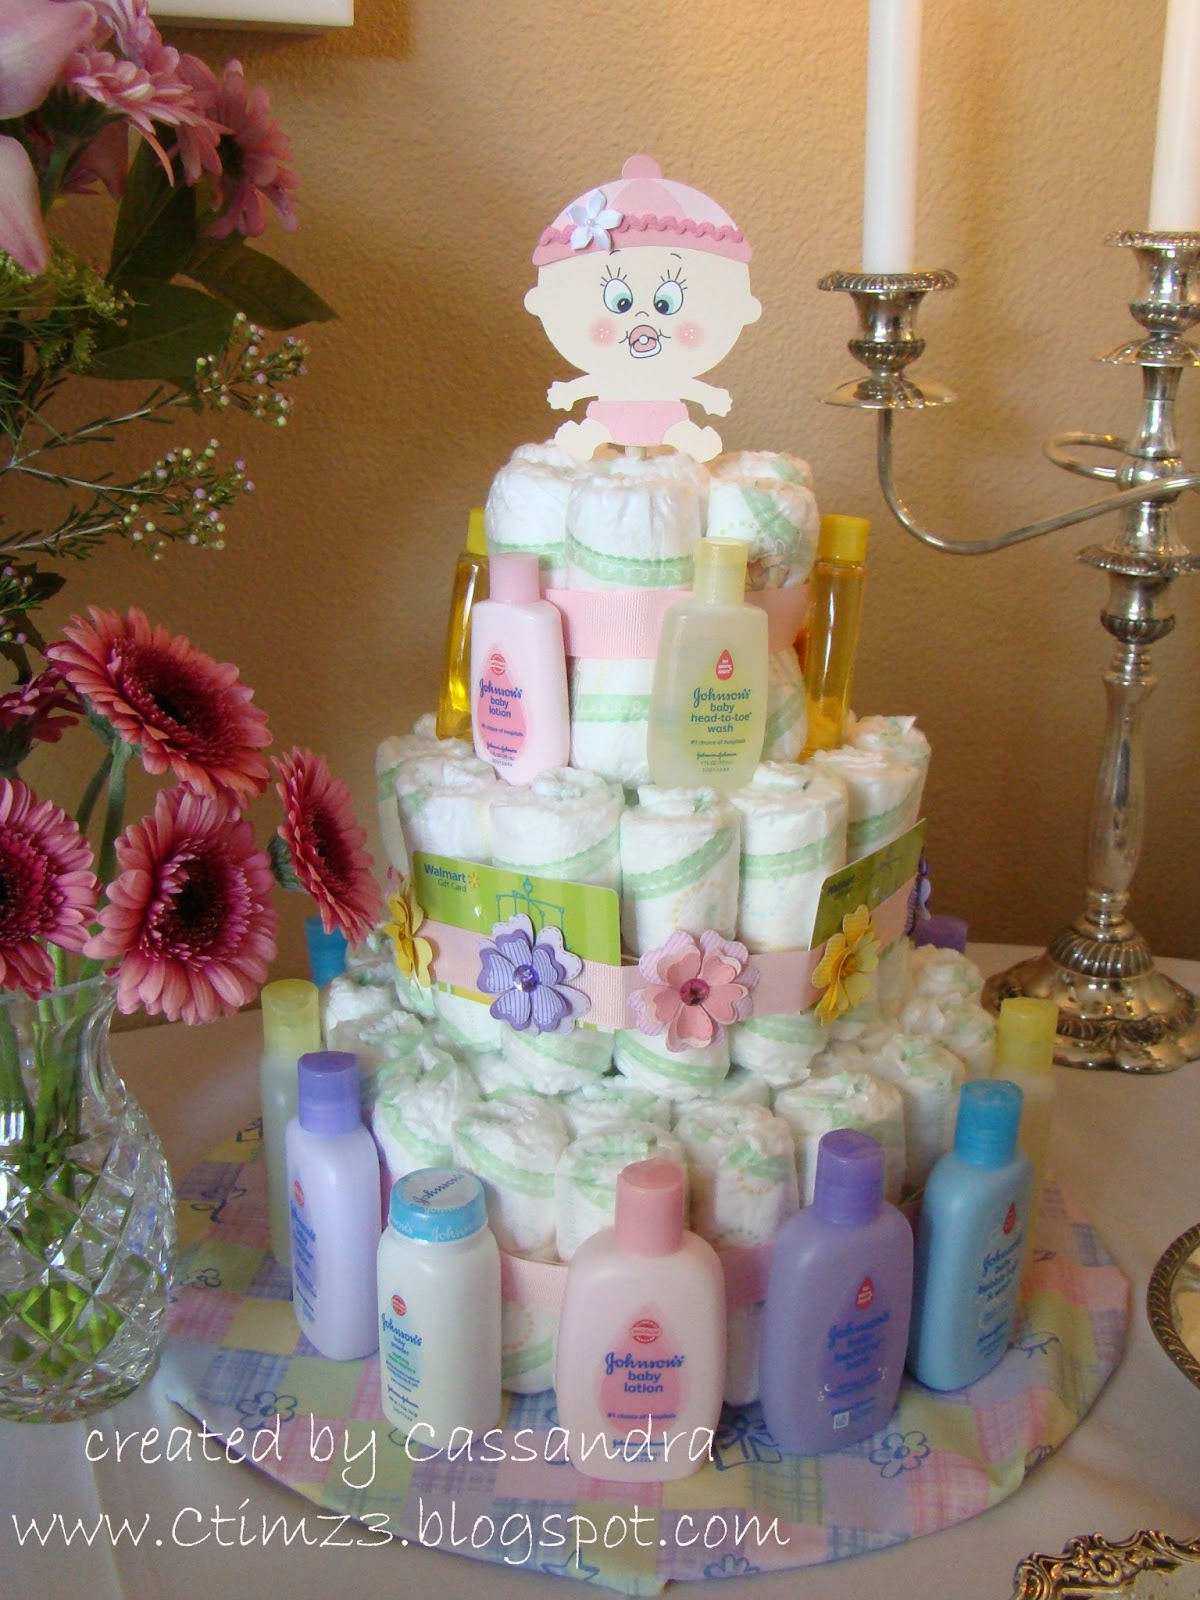 CREATING with COLOR by CASSANDRA Wel e Sweet Baby Diaper Cake